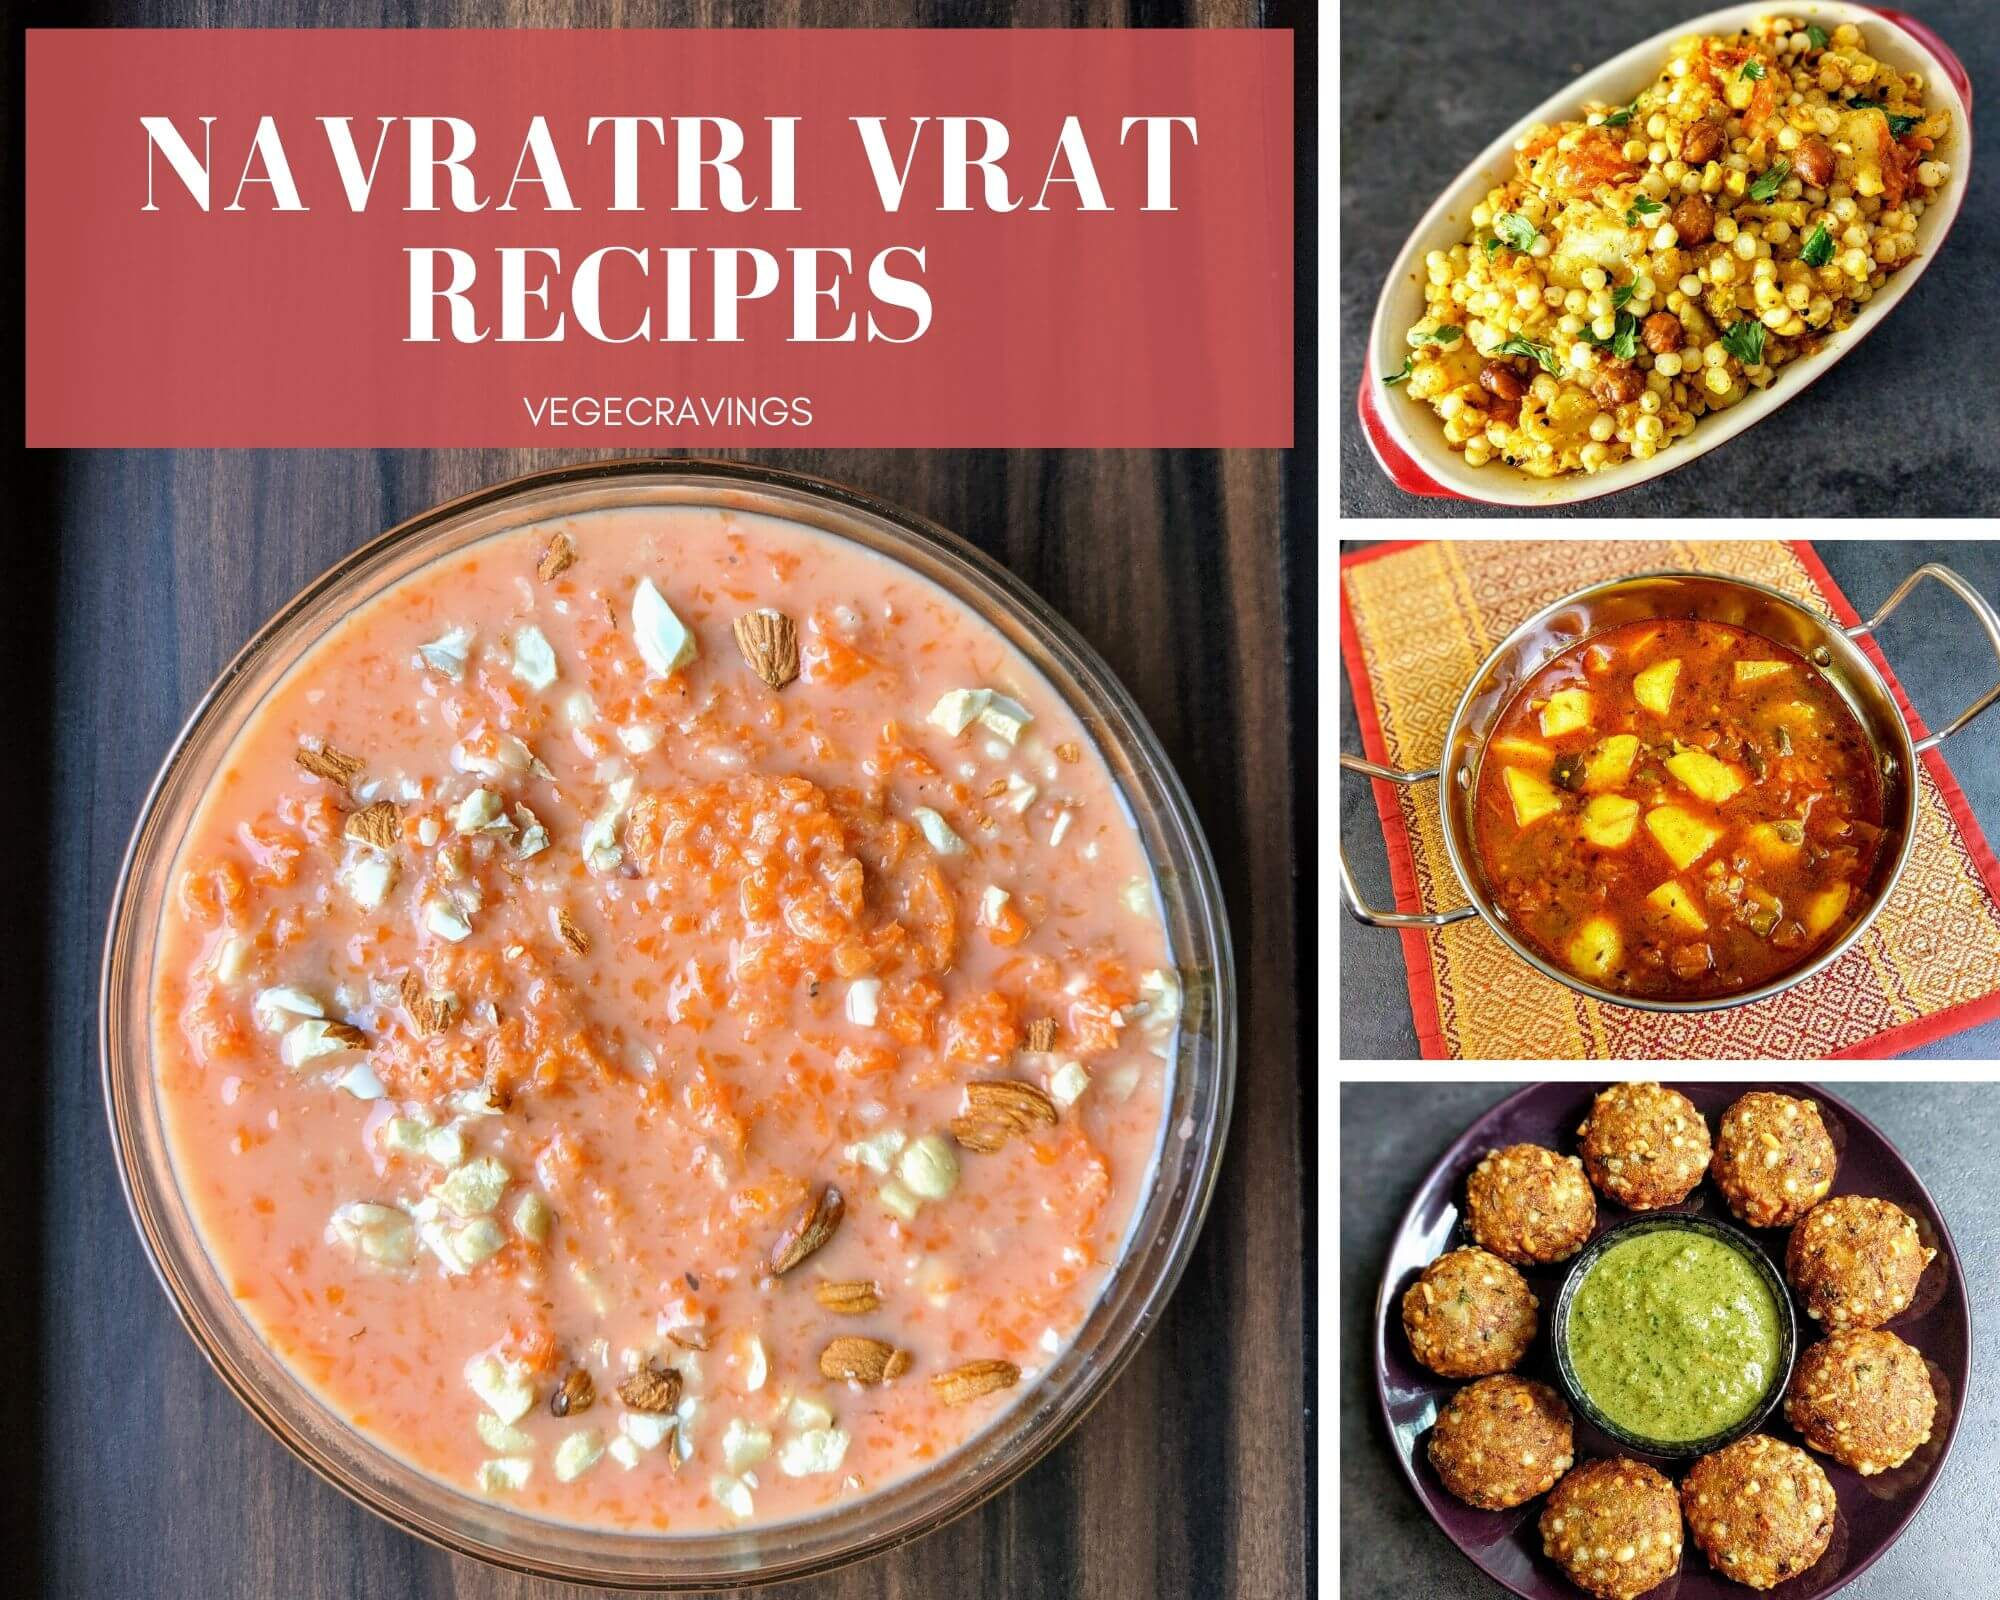 People all over India observe fast for celebrating the festival of Navratri. Checkout these easy & delicious Navratri food recipes for vrat.